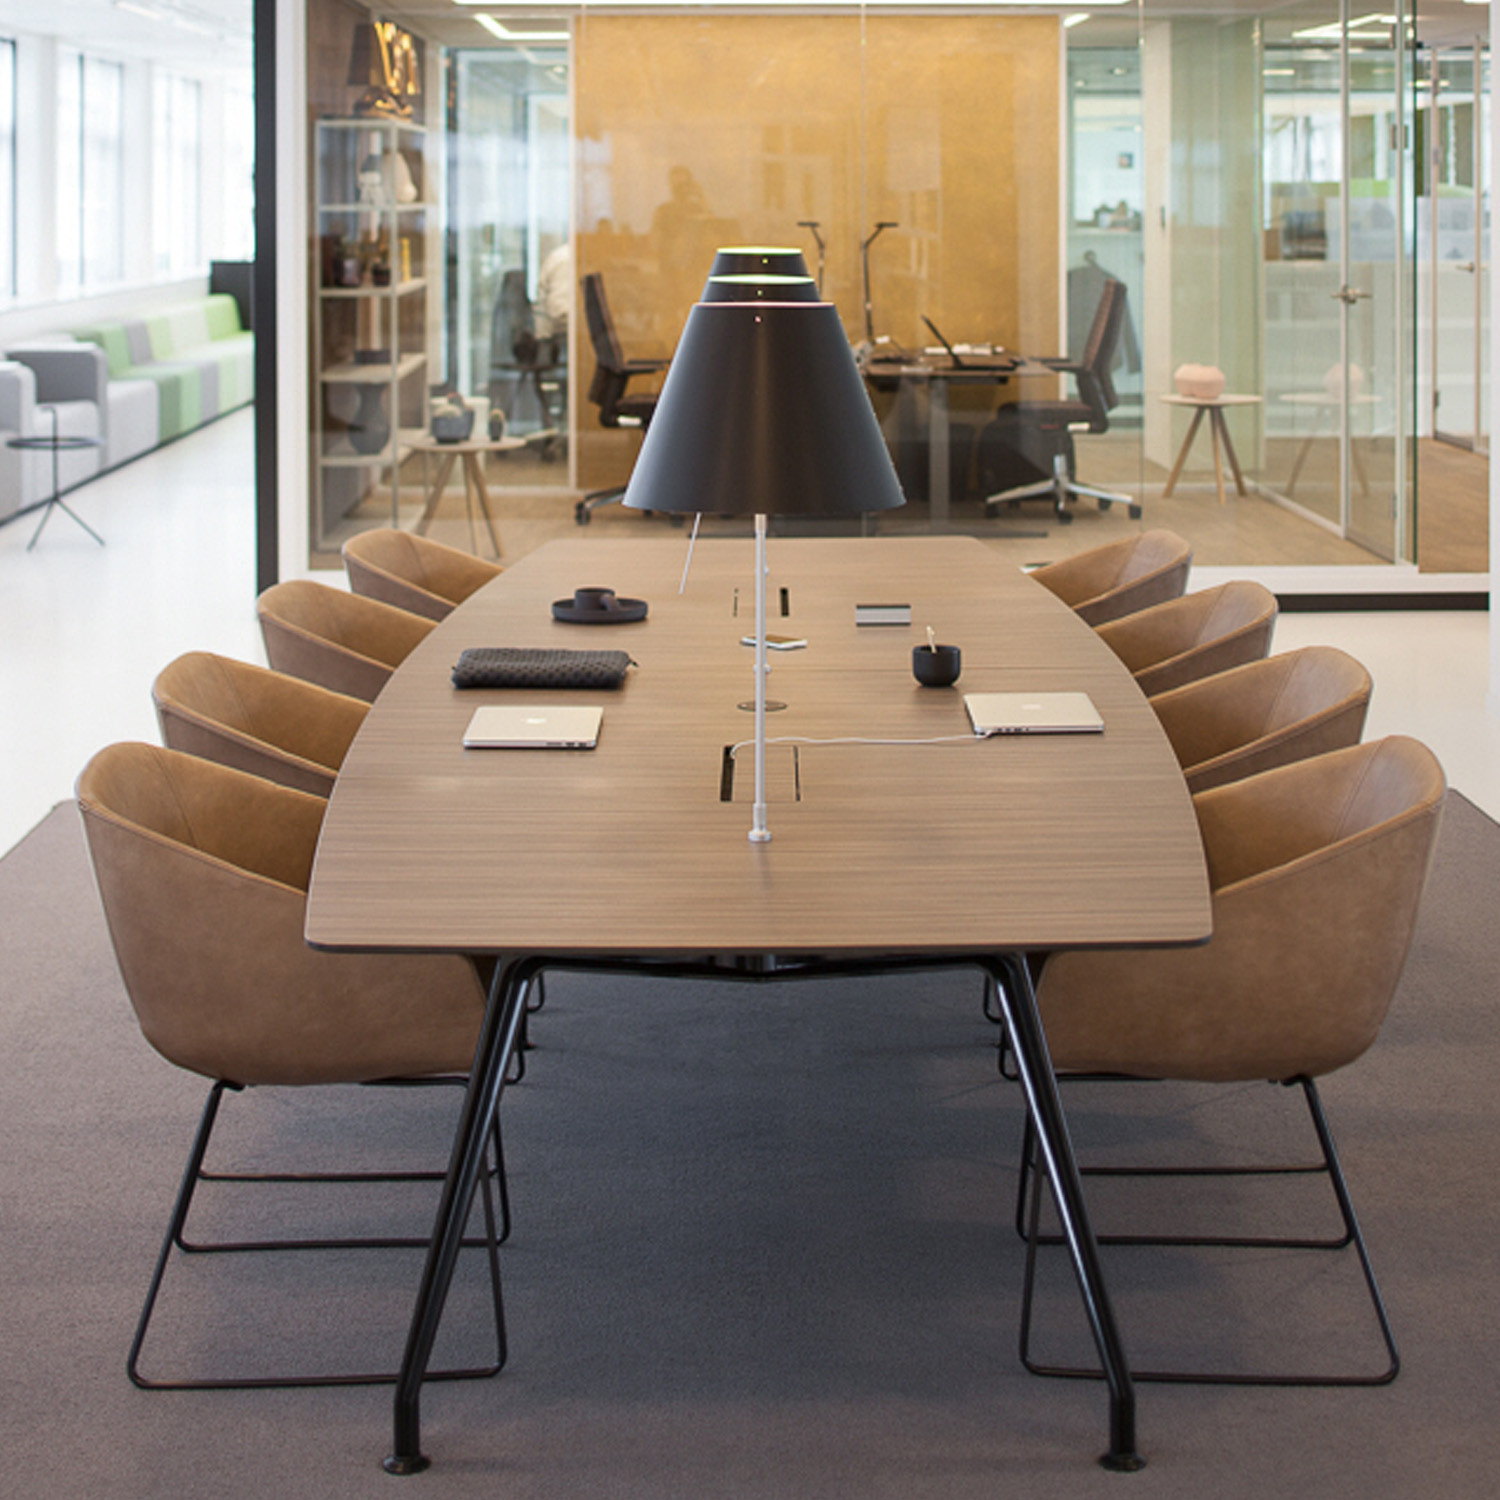 Ahrend 1200 Edition Conference Table